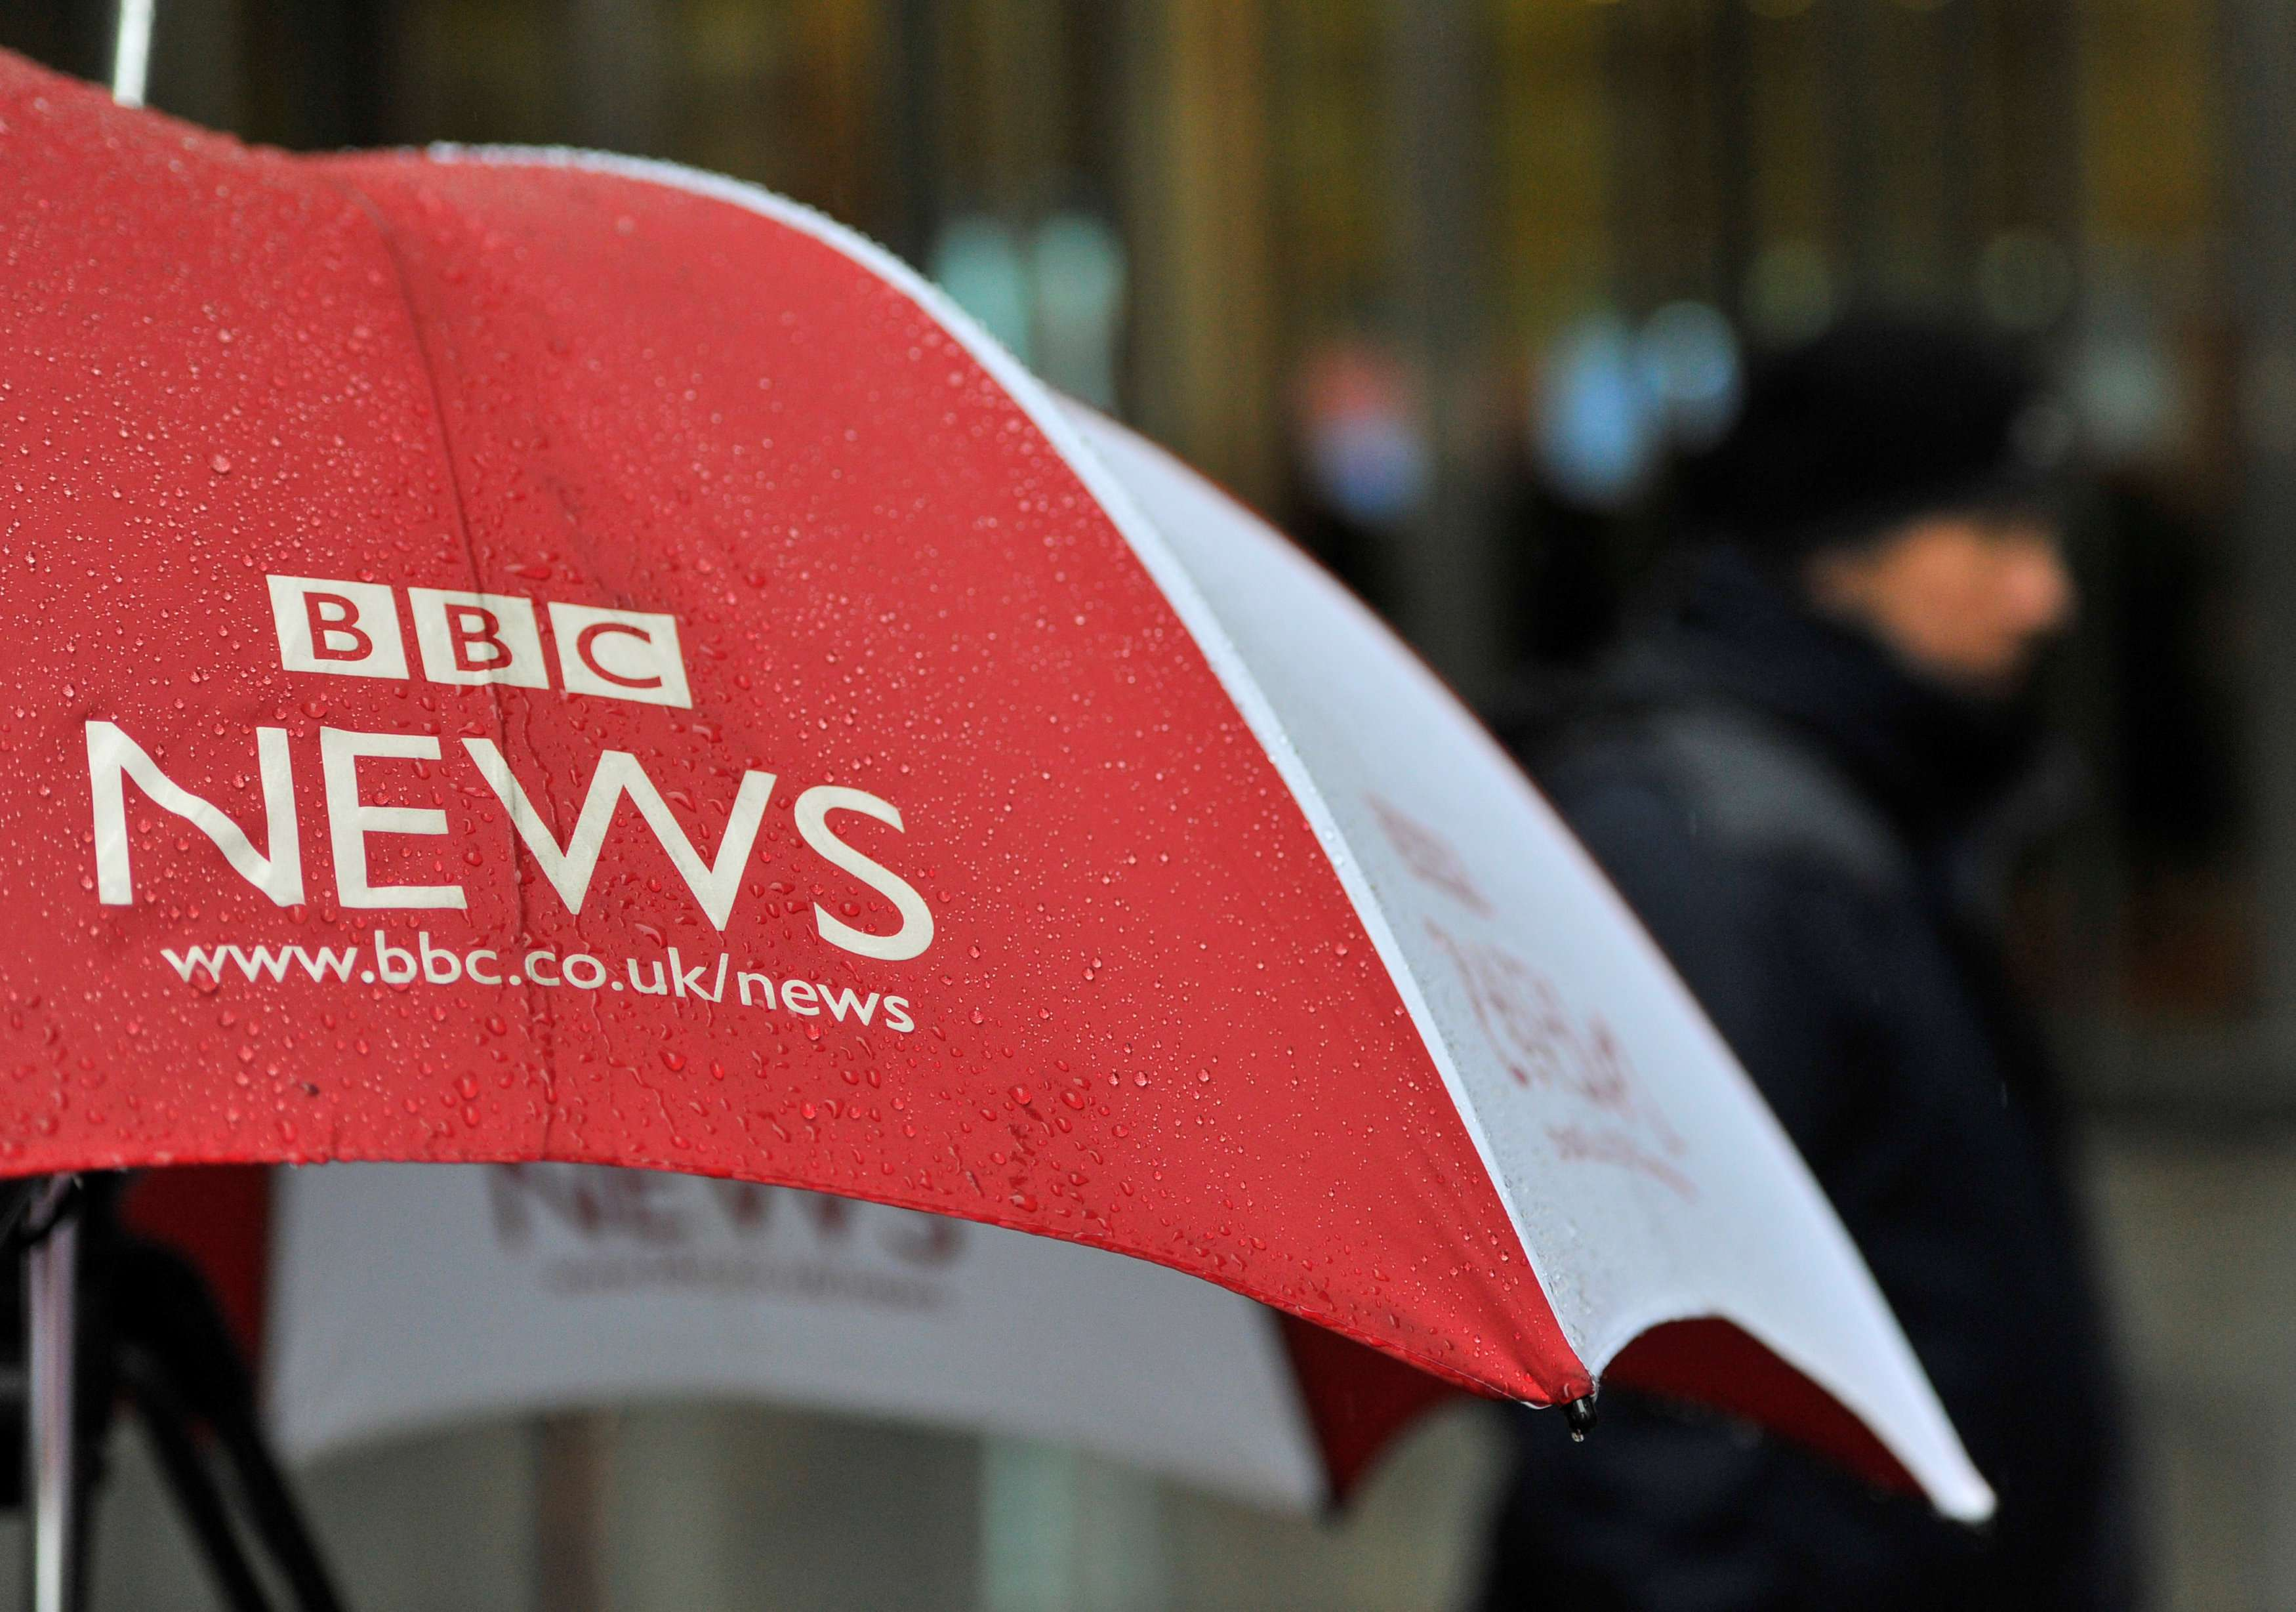 A BBC umbrella protects broadcast equipment outside the BBC's New Broadcasting House in London. (Reuters)